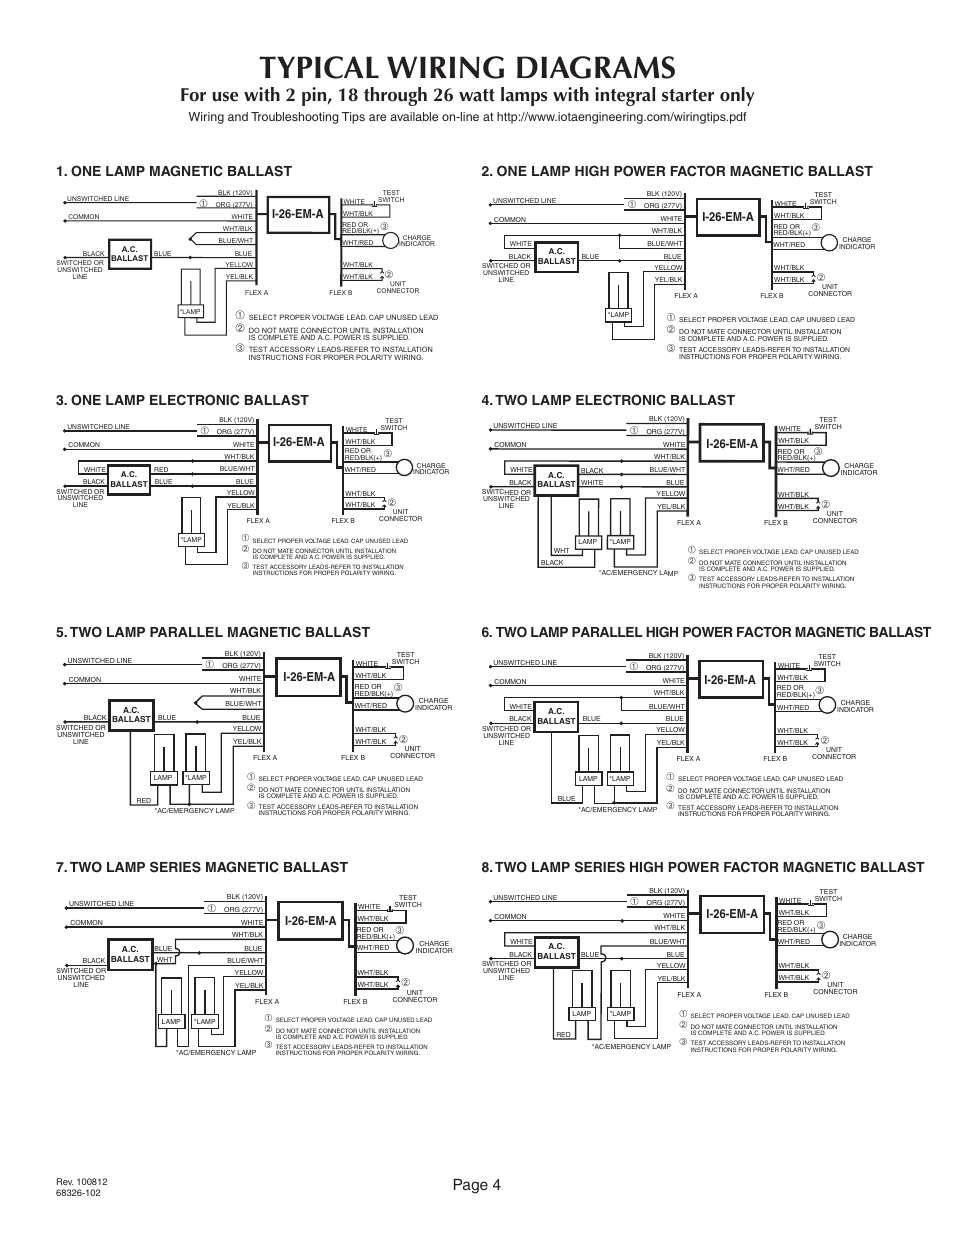 iota i 80 emergency ballast wiring diagram 28 images iota i 80 rh ys5bg us iota i-80 emergency ballast wiring diagram iota i320 emergency ballast wiring diagram